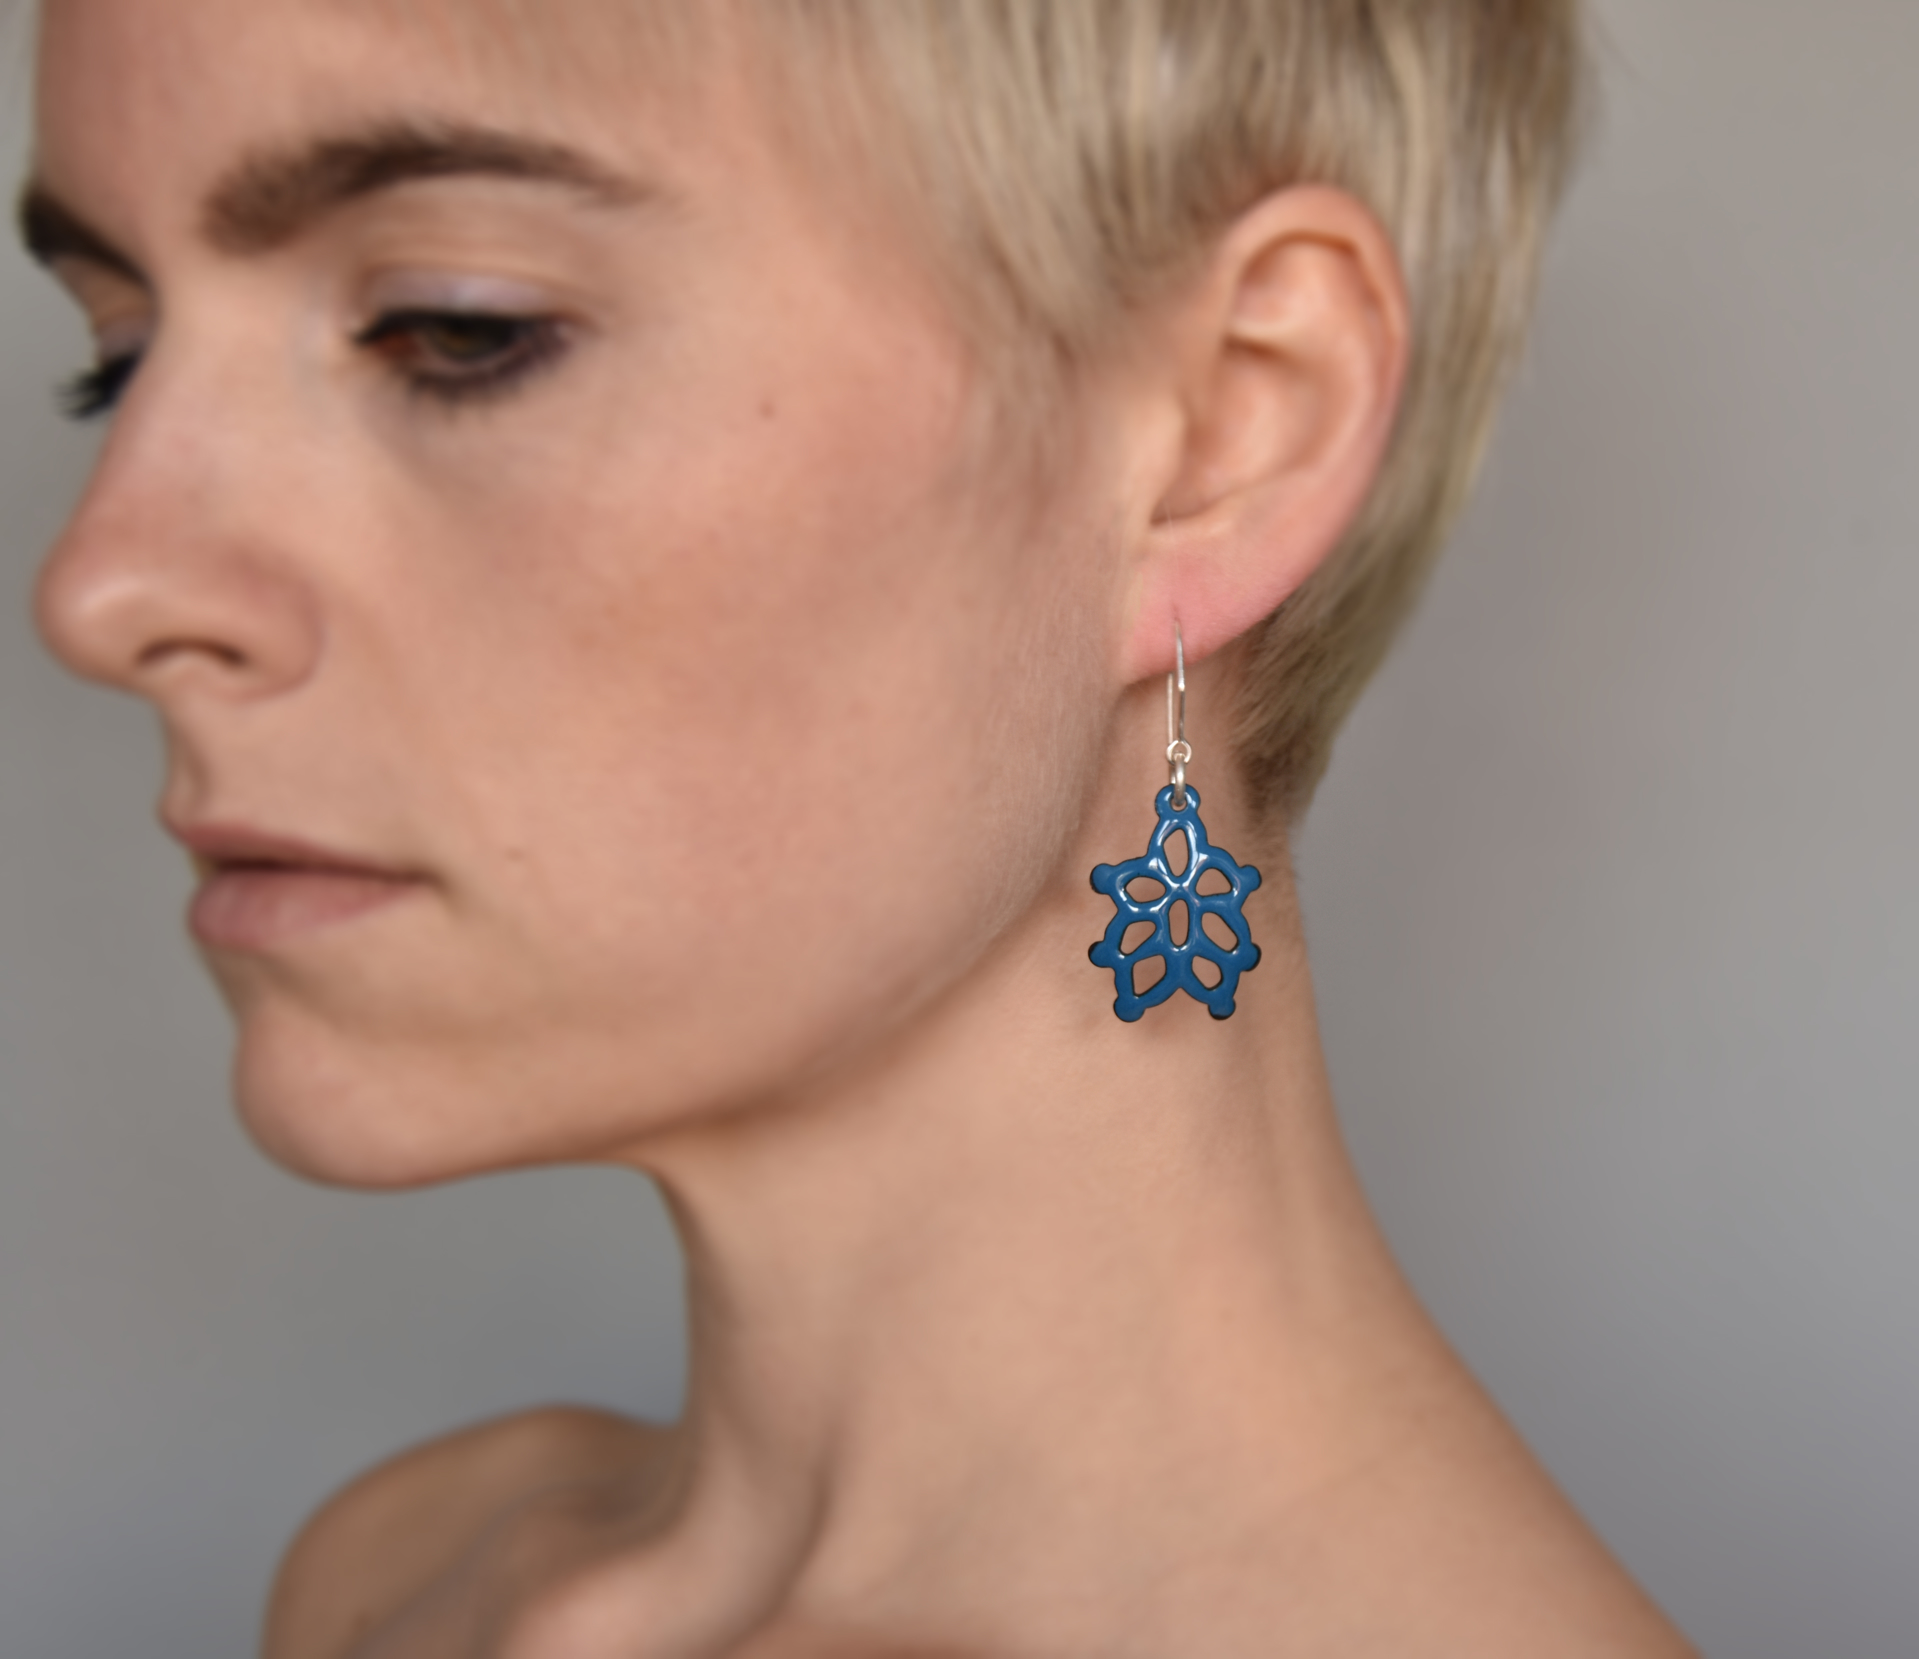 Lotus Structure Earrings by Joanna Nealey